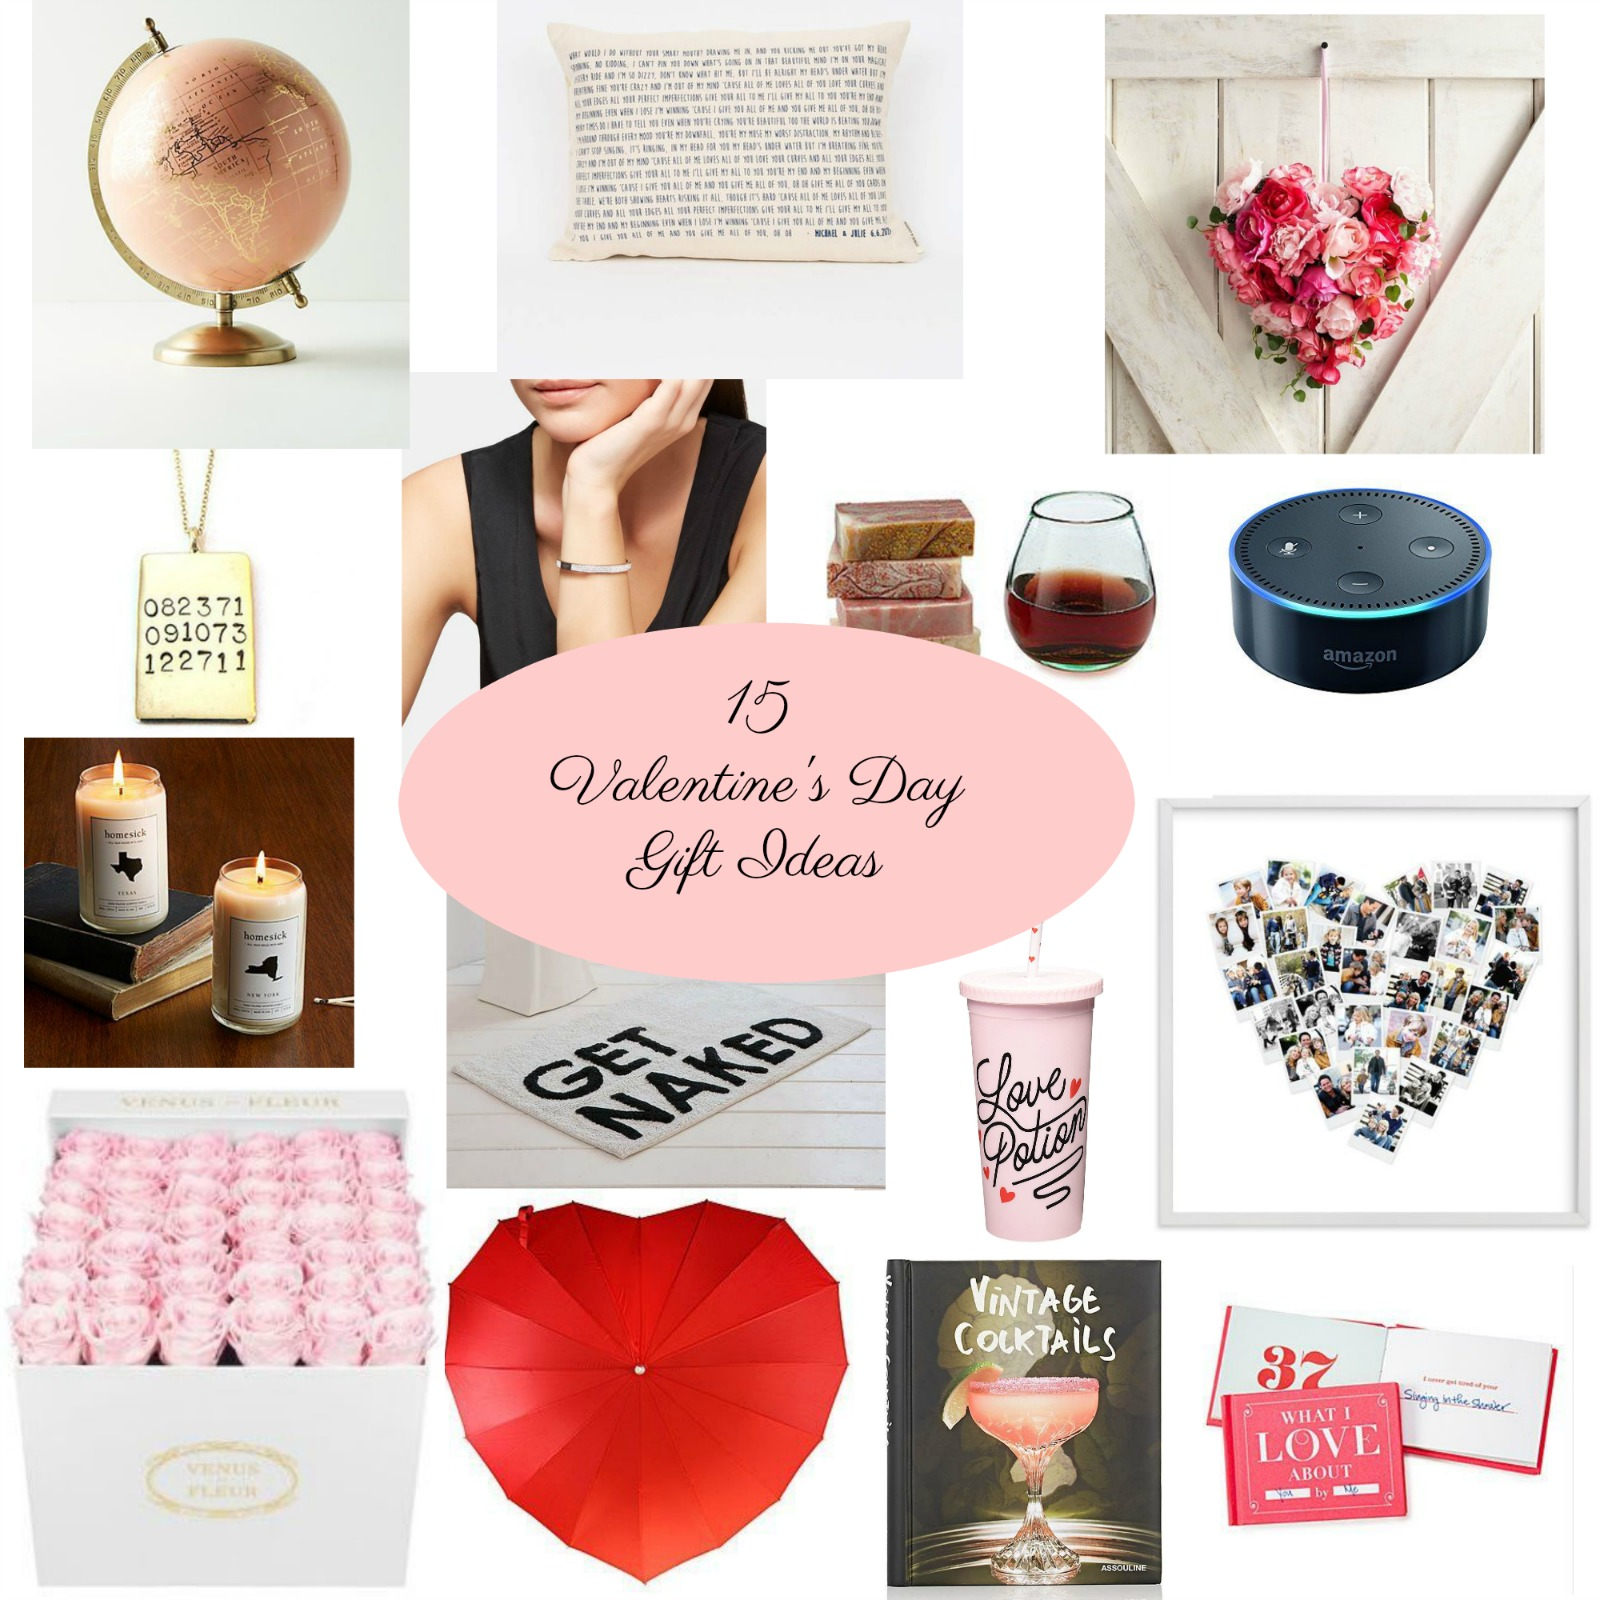 15 Valentine's Day Gift Ideas